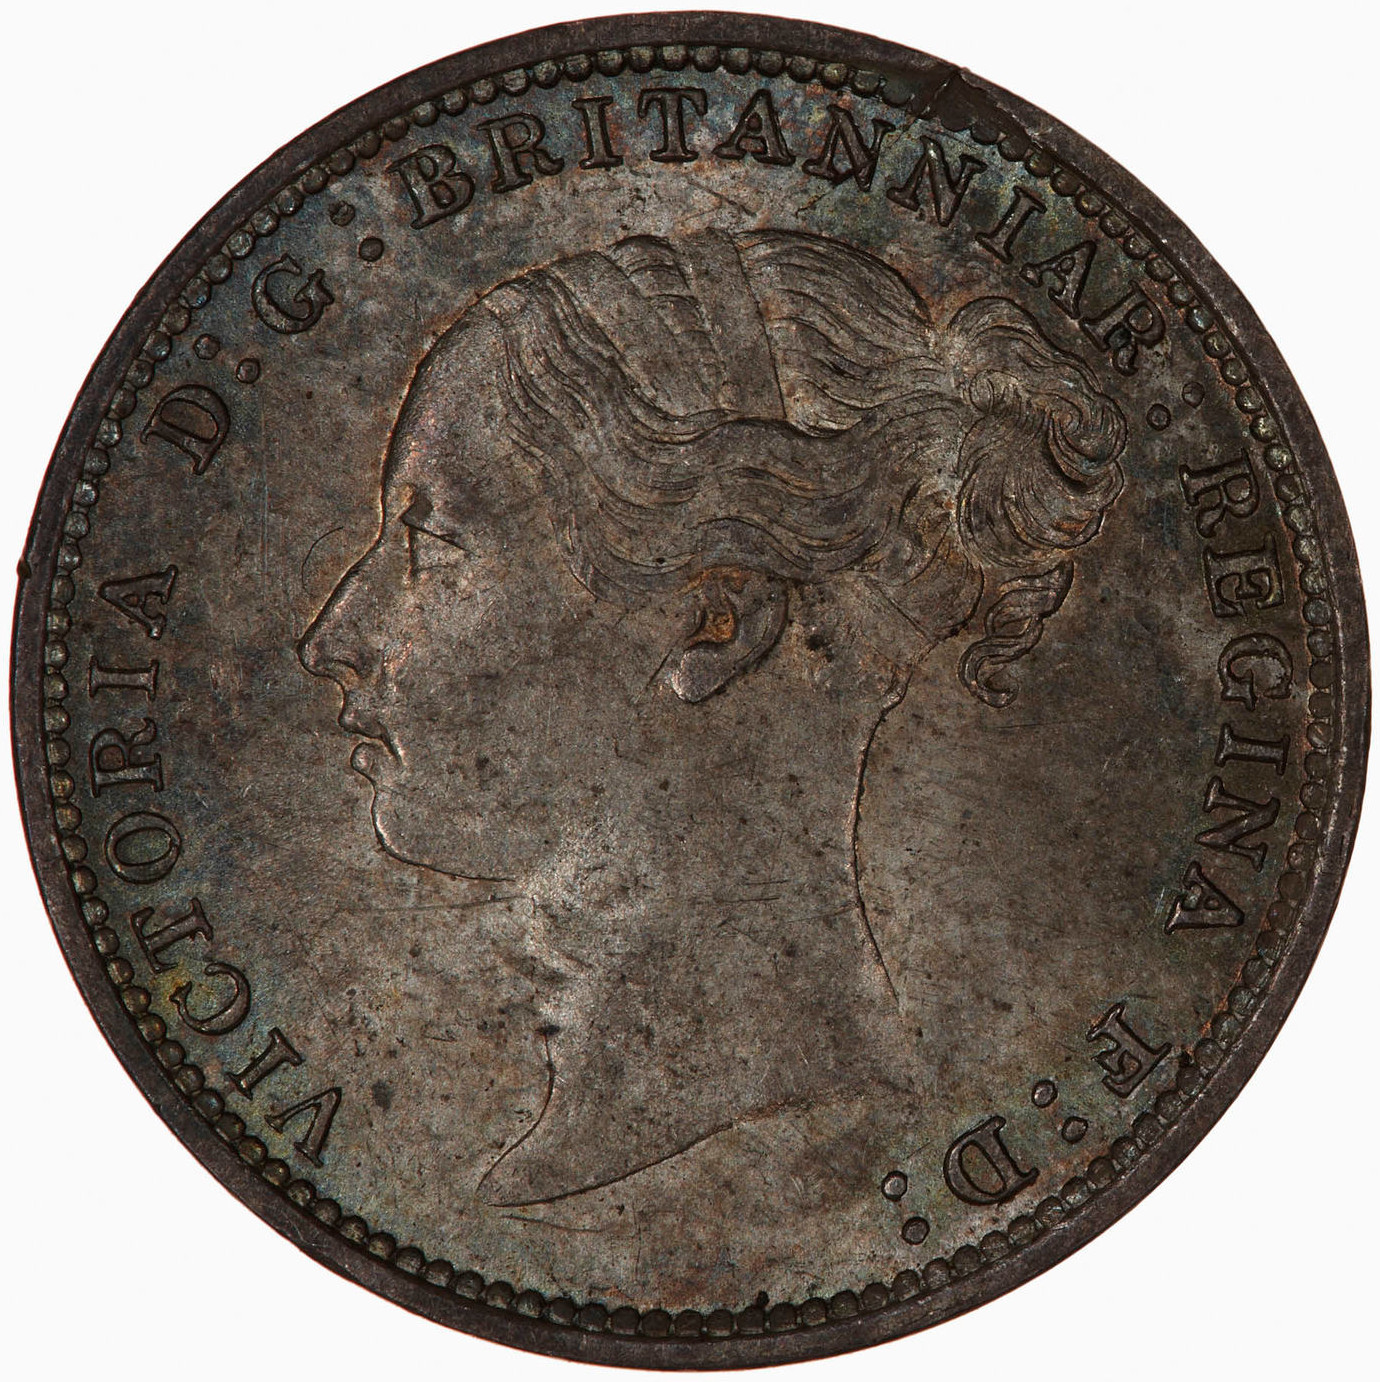 Threepence 1886 (Maundy): Photo Coin - Threepence, Queen Victoria, Great Britain, 1886